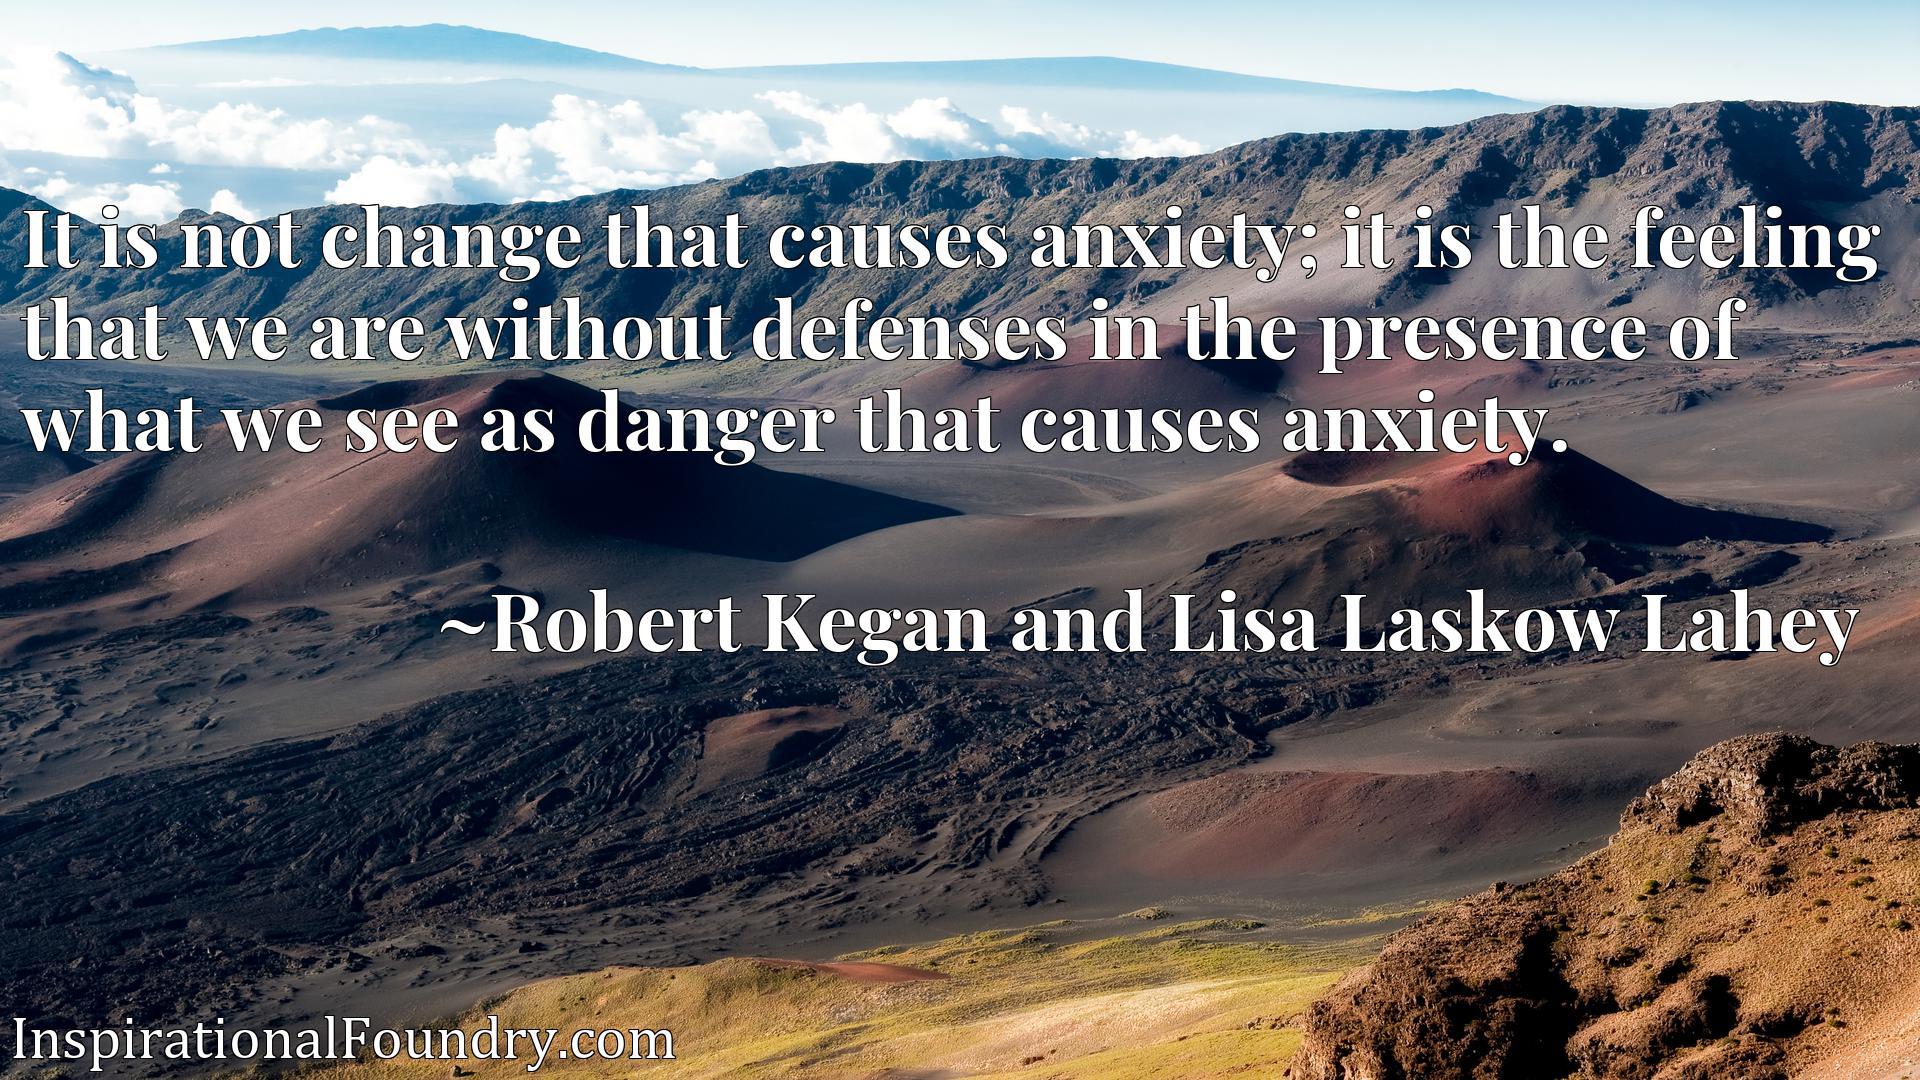 It is not change that causes anxiety; it is the feeling that we are without defenses in the presence of what we see as danger that causes anxiety.